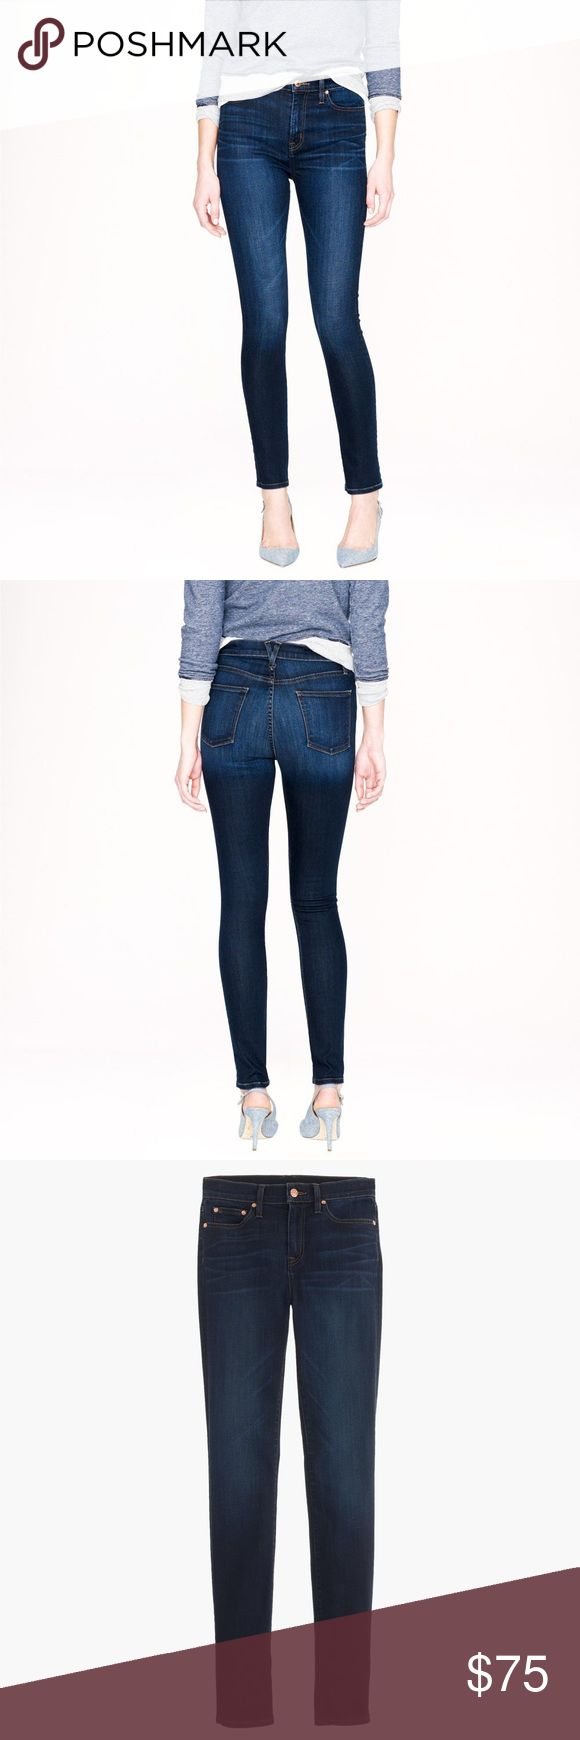 J Crew- Point Sur Denim J Crew Point Sur Denim, new with tags. Style #A4449 J Crew Jeans Skinny